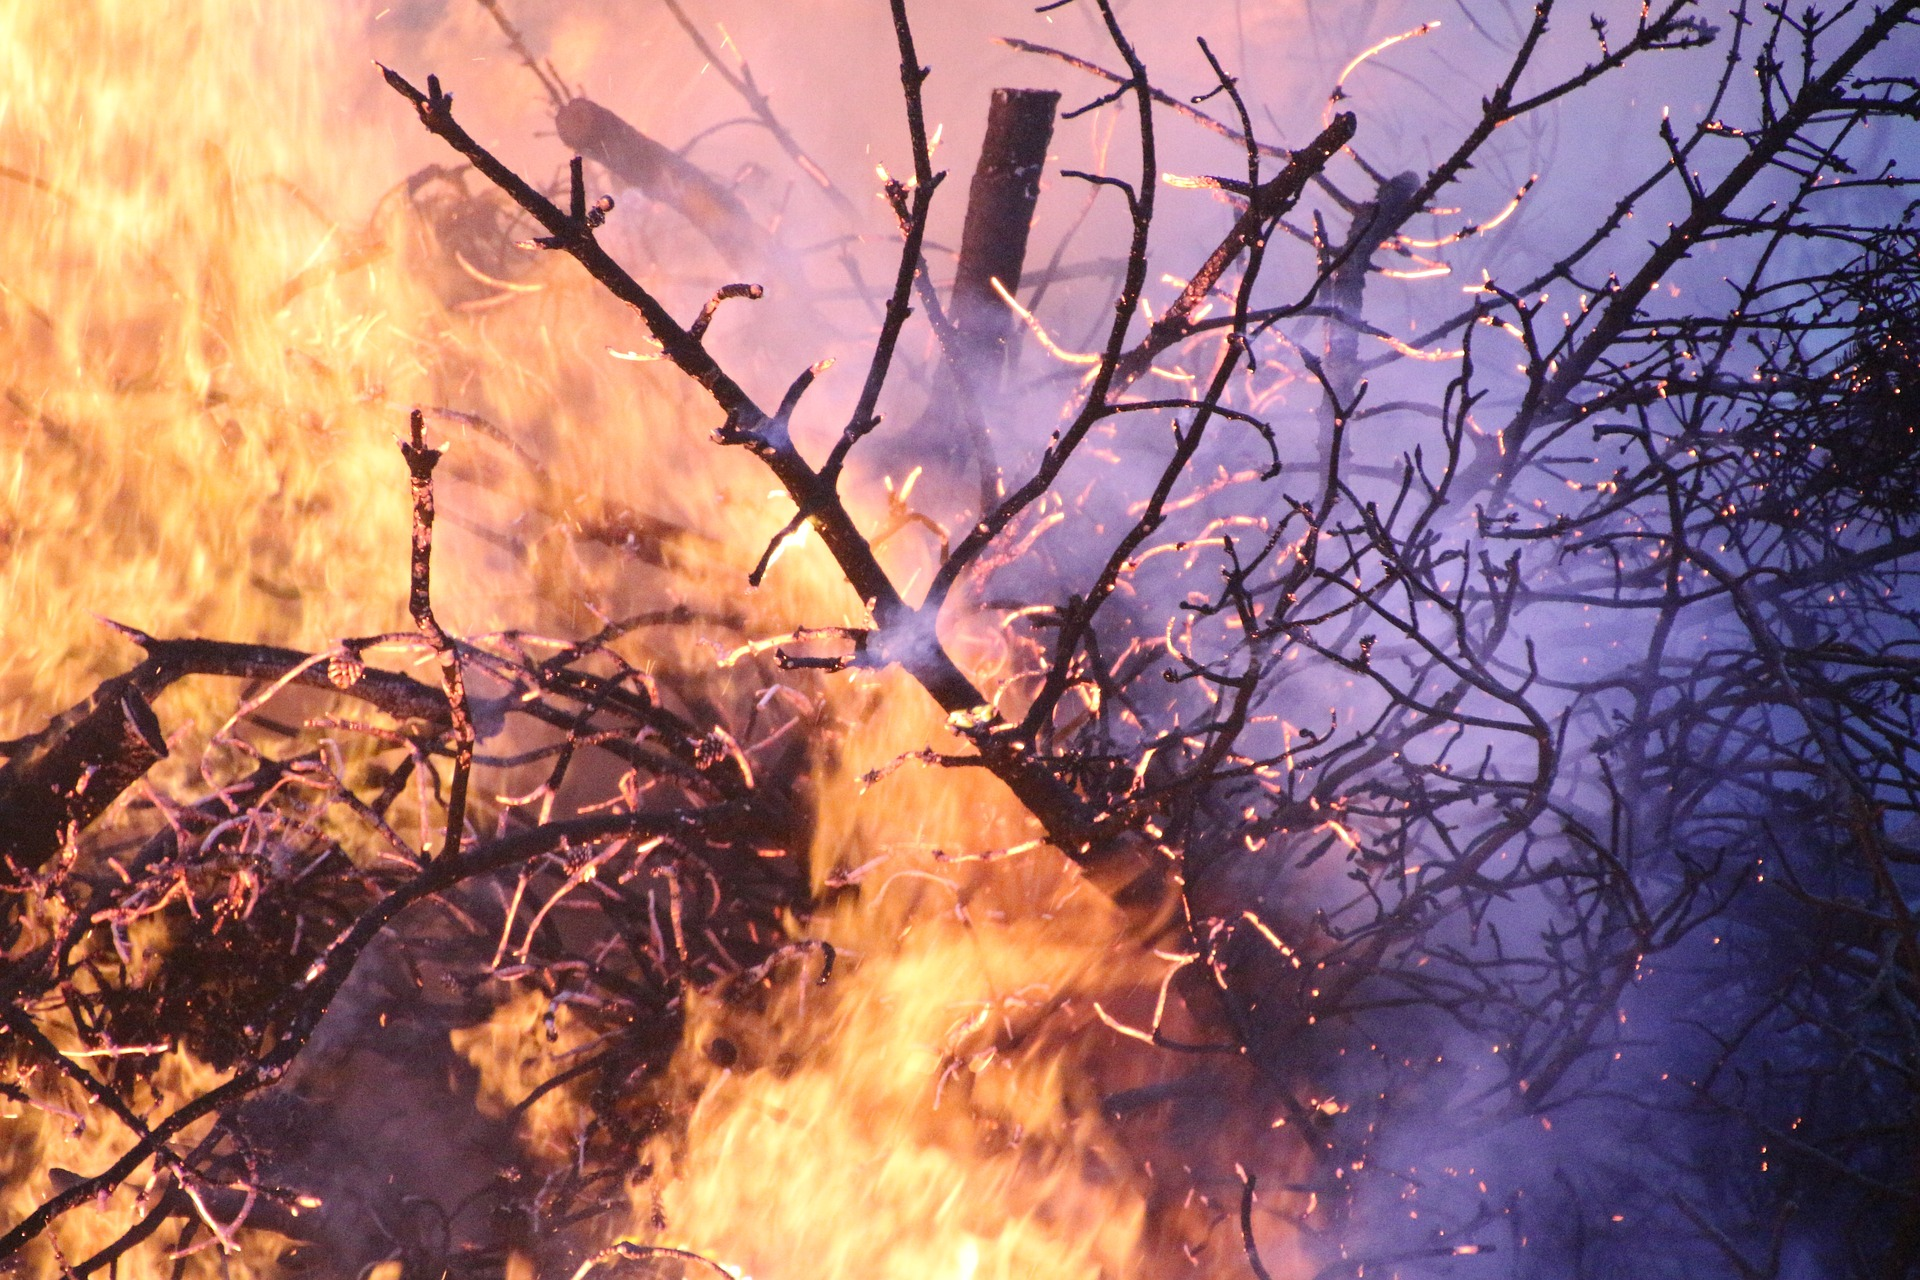 forest-fire-1669266_1920